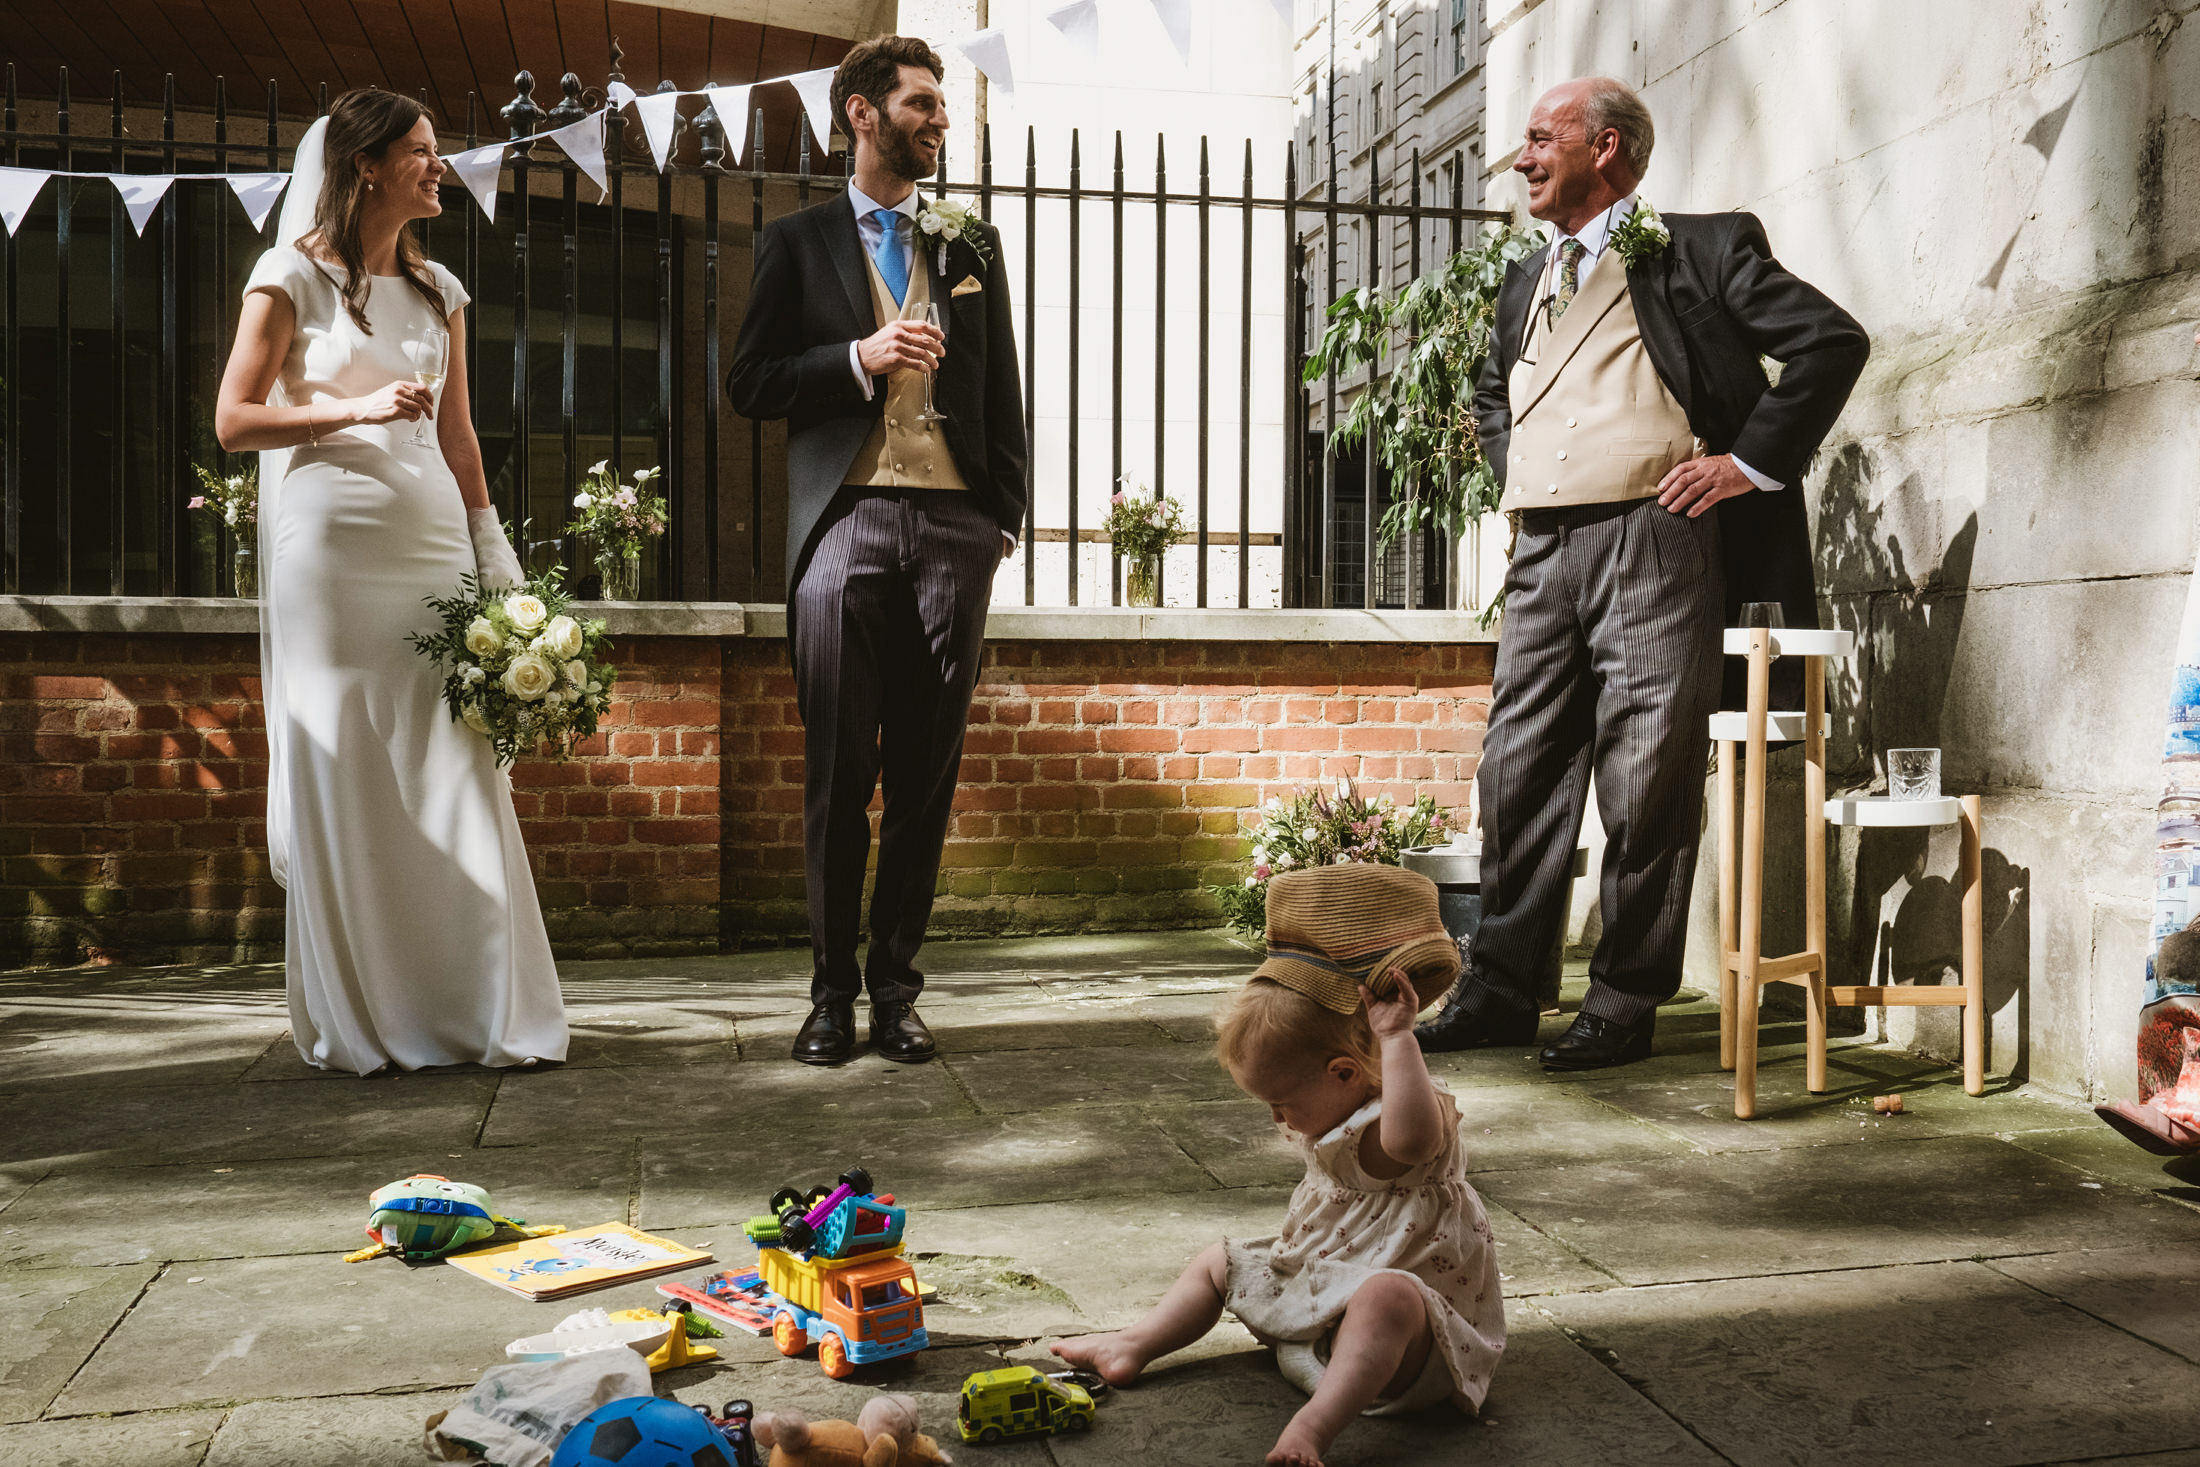 A young child seated outside on the ground front centre plays with a hat. Around her are lots of children's toys. Behind her the father of the bride speech is under way. Standing behind her the bride, groom, and father of the bride hold champagne glasses and laugh